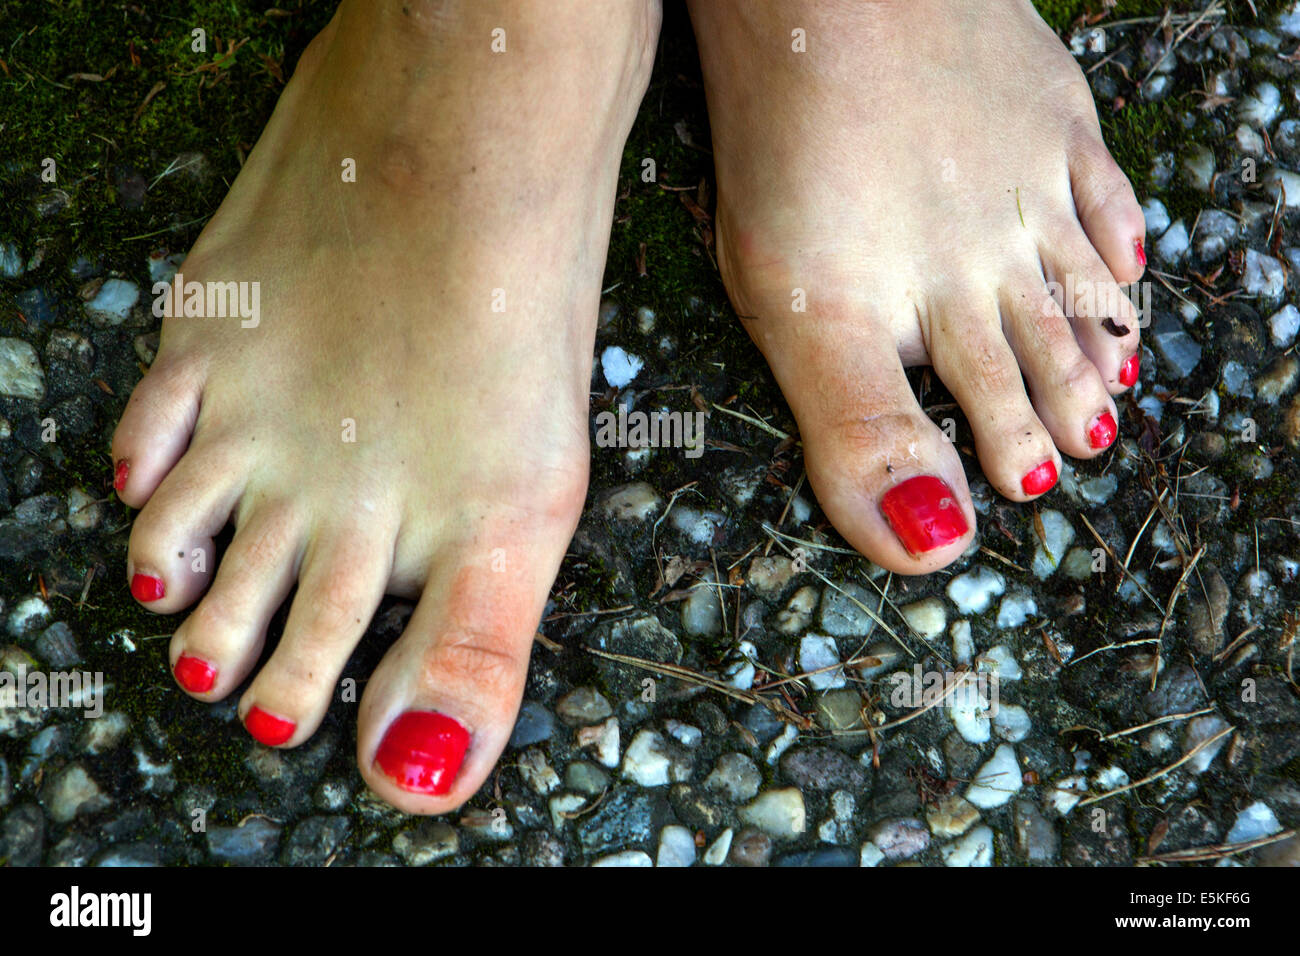 bare feet with red-colored nails - Stock Image